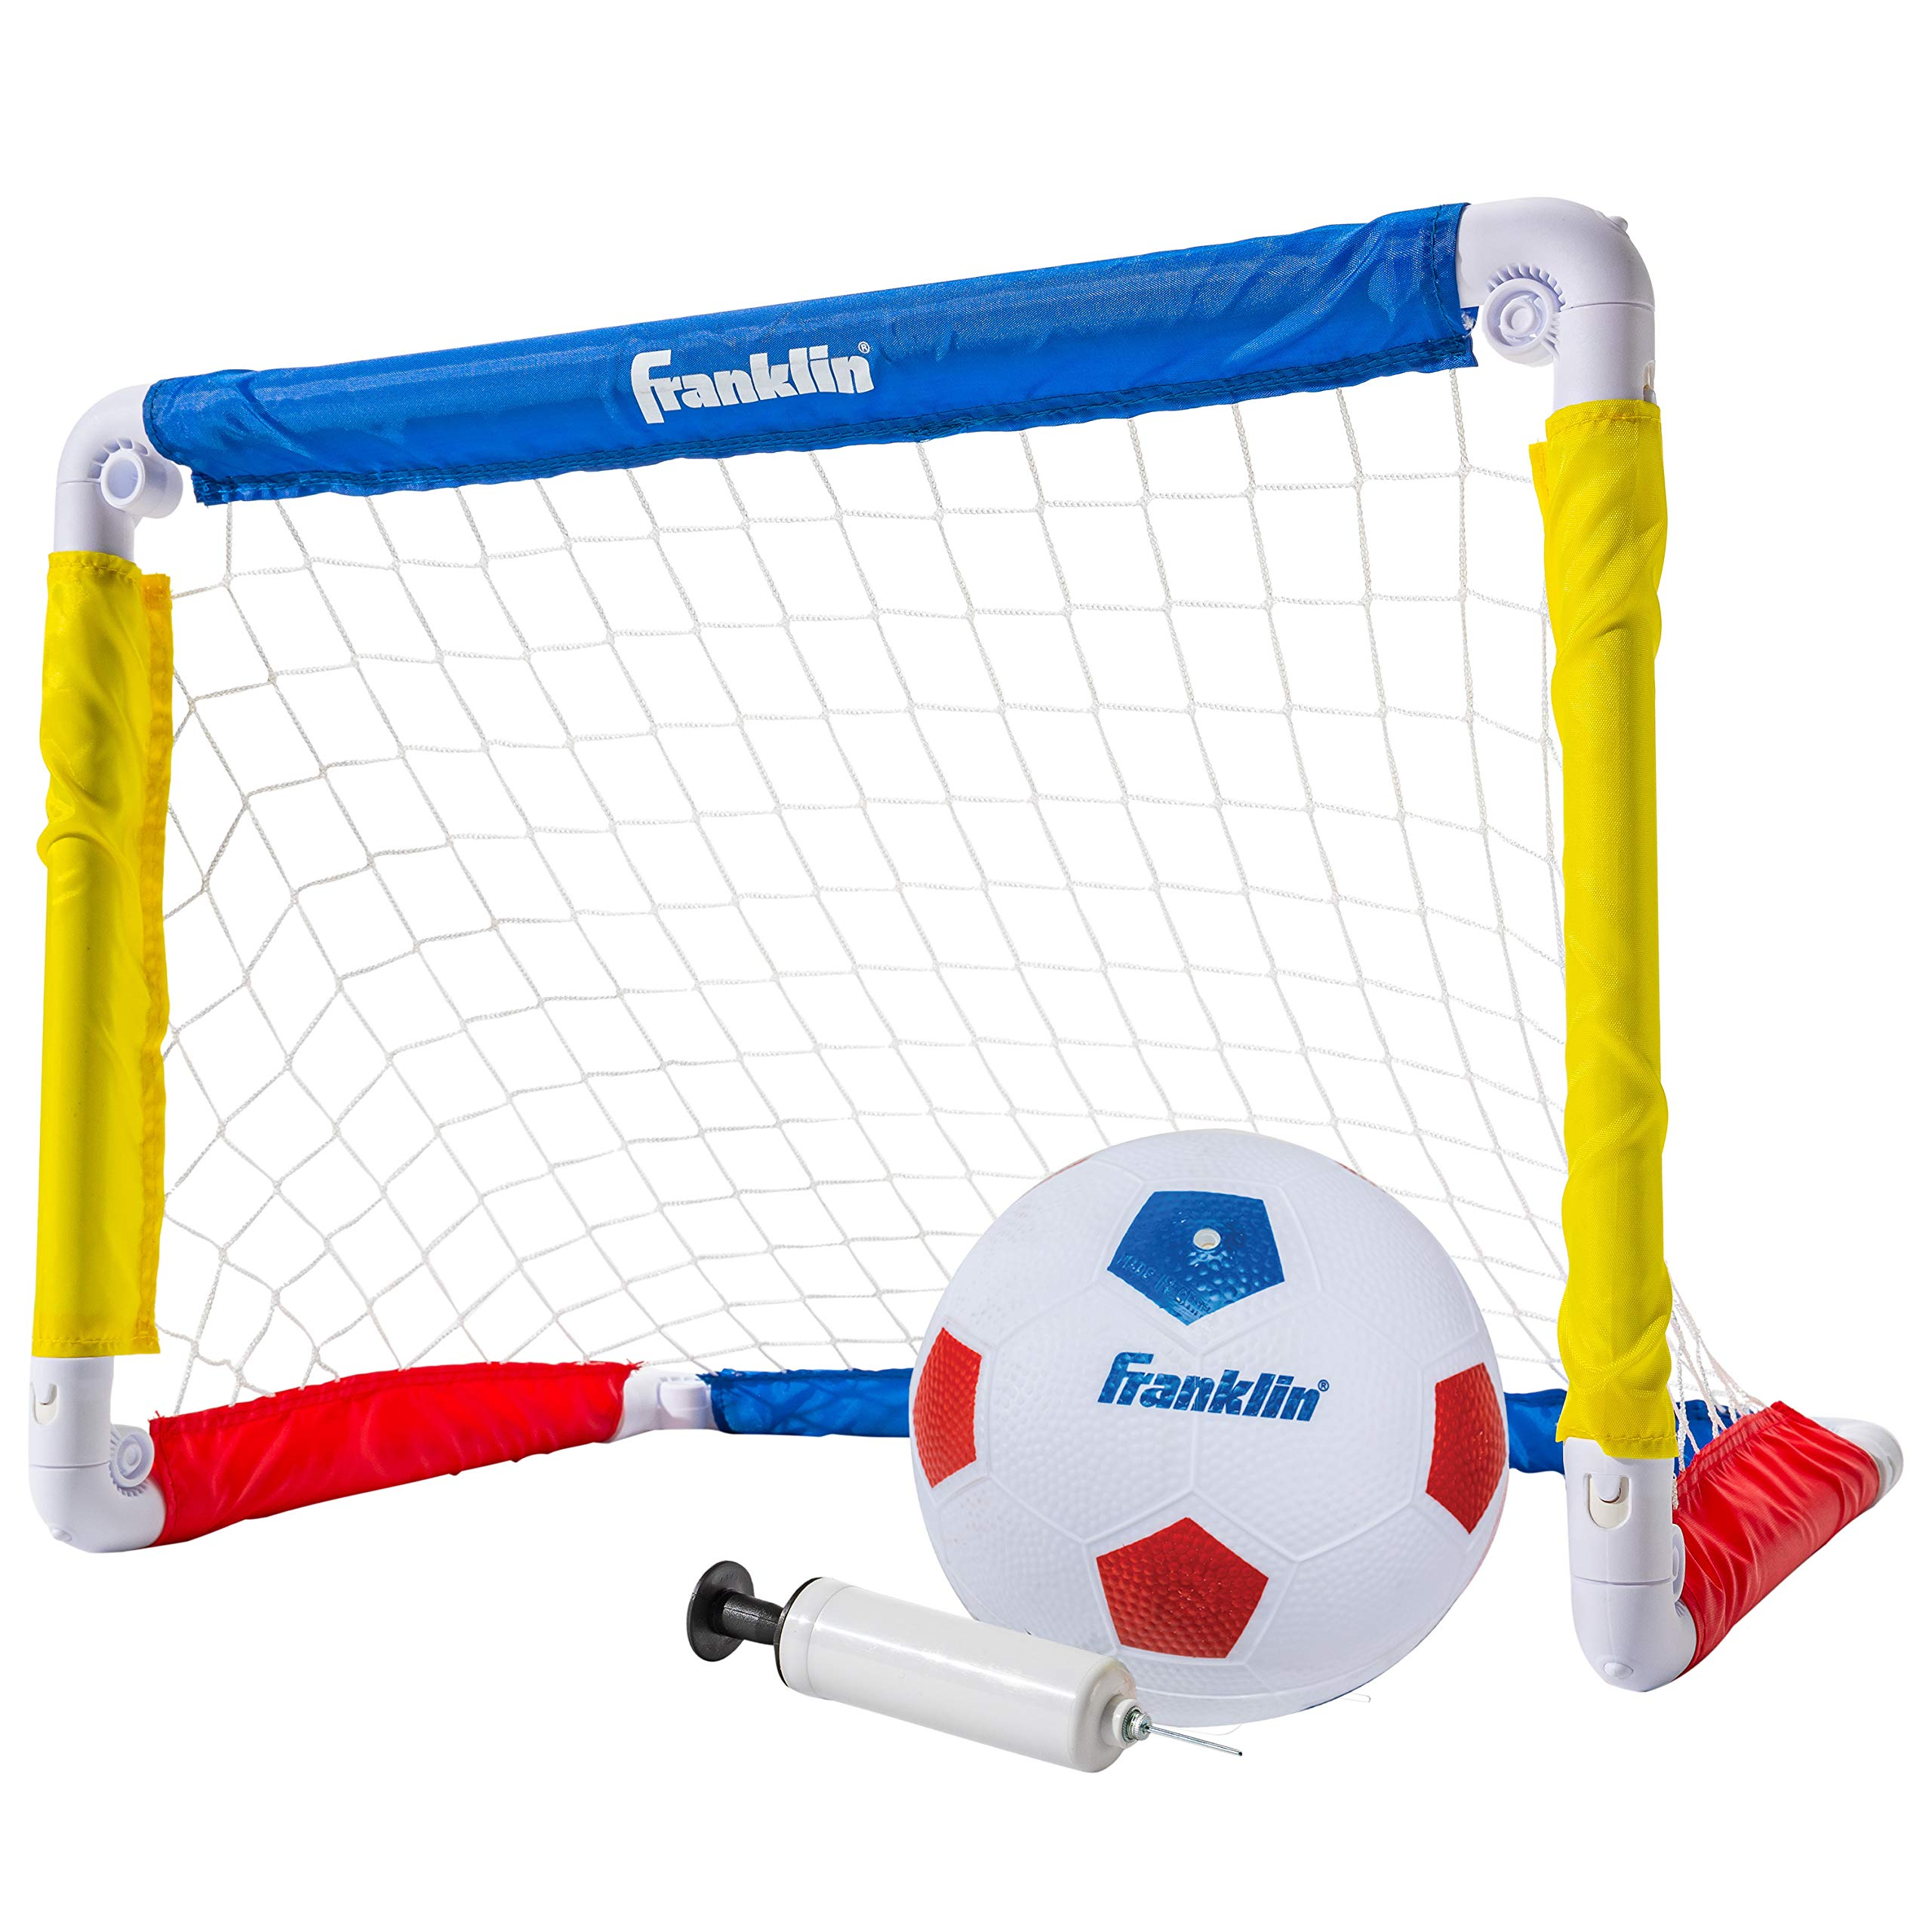 Franklin Sports Kids Soccer Goal with Ball & Pump - 24'' X 16'' Folding Goal - Great for Backyard Or Indoor Play by Franklin Sports